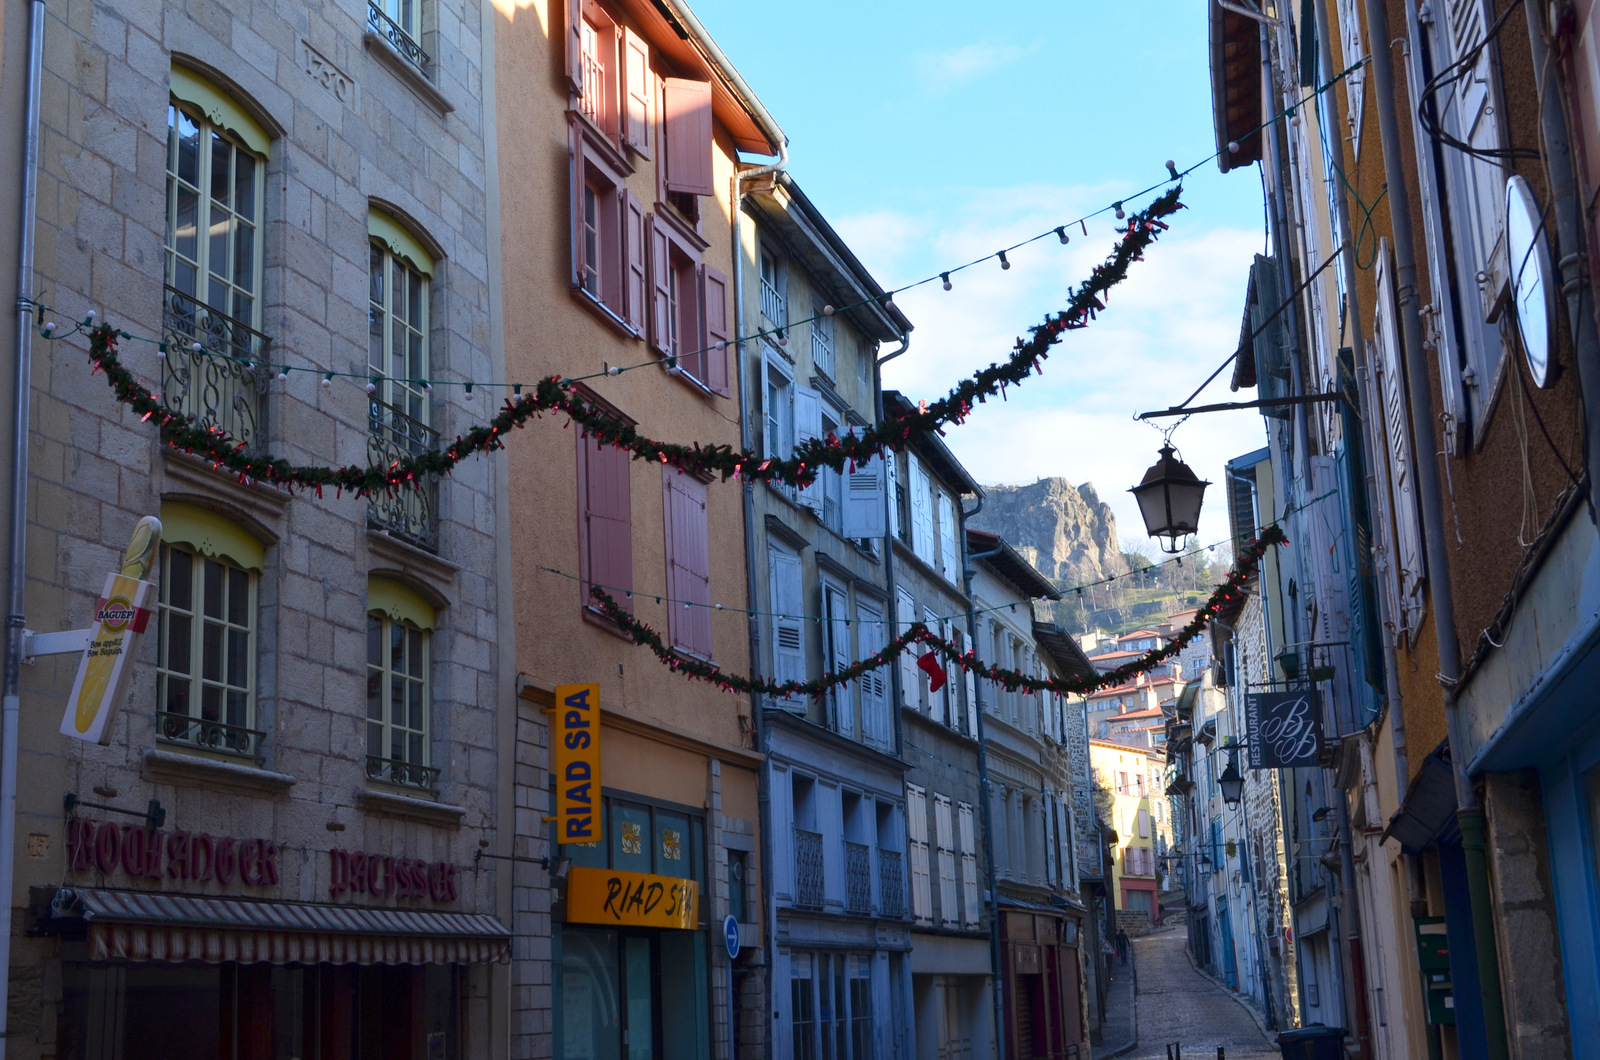 Charming colourful narrow streets decorated for Christmas